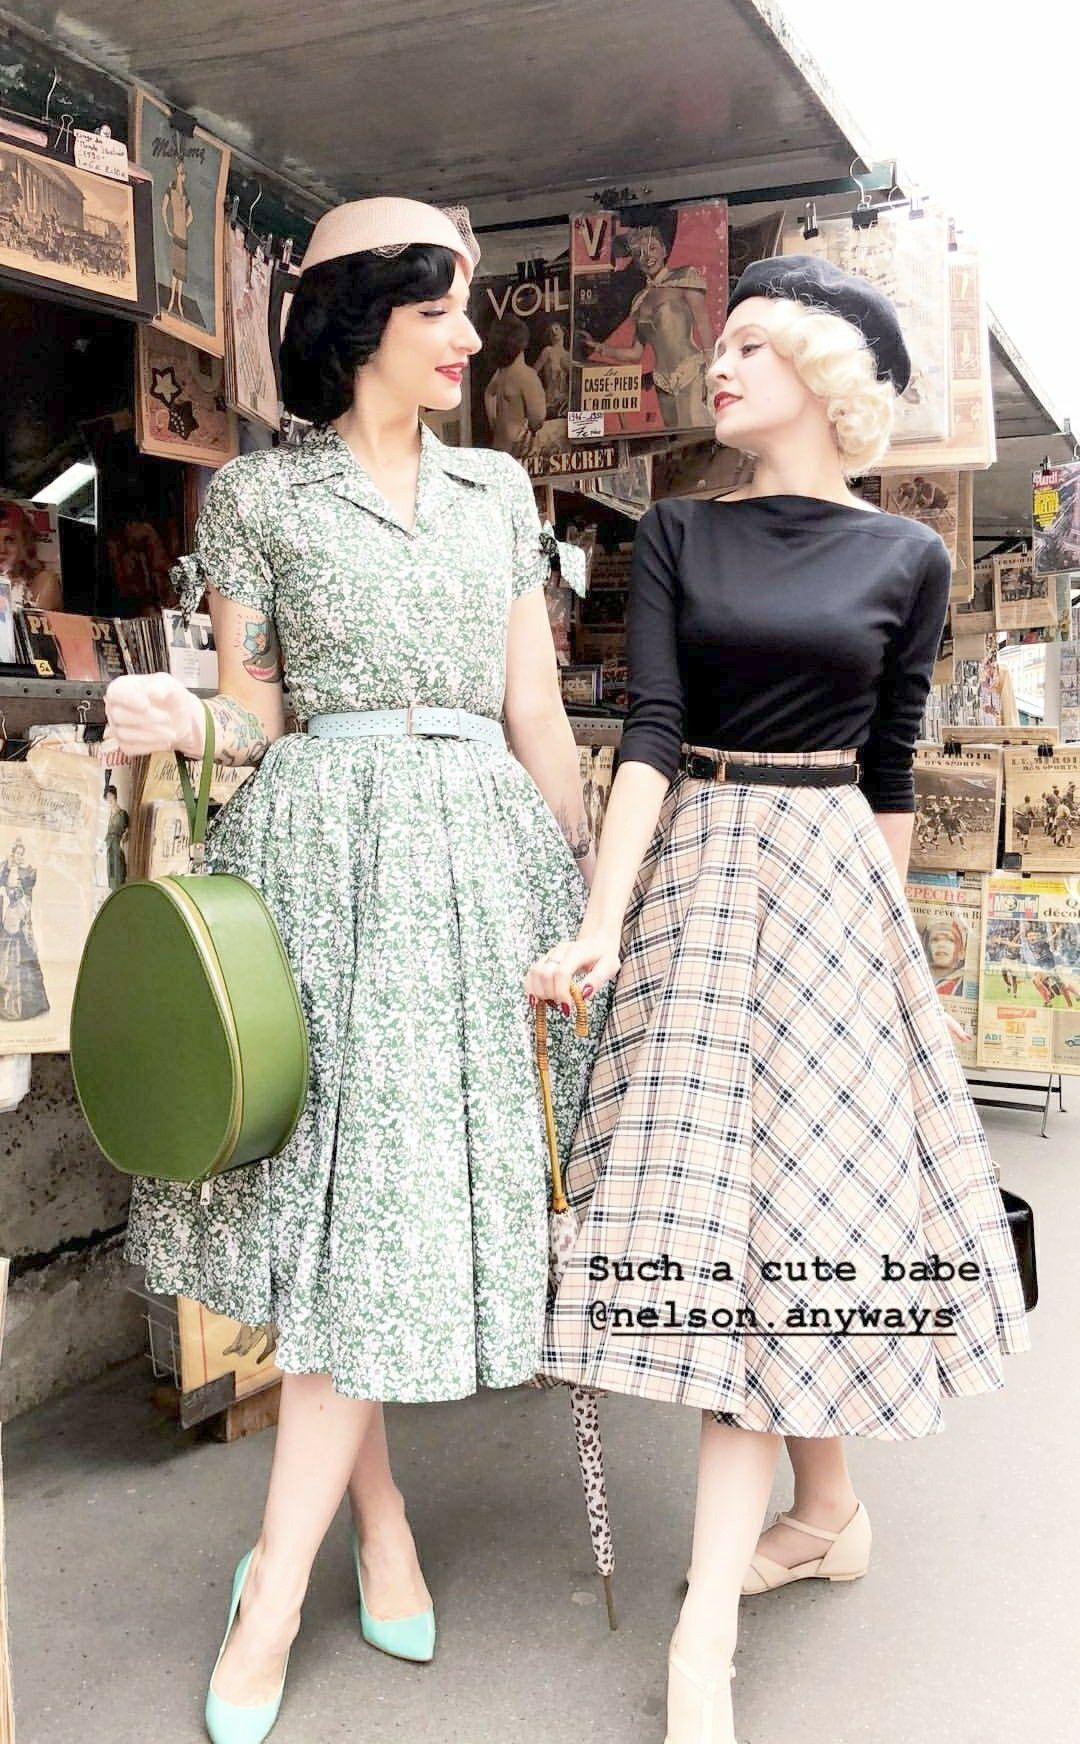 Dress Fashion History beside Womens Designer Fashion Rings down 1950s Style Cocktail Dresses ... Neon Green Dress Fashion Nova #vintagefashion1950s